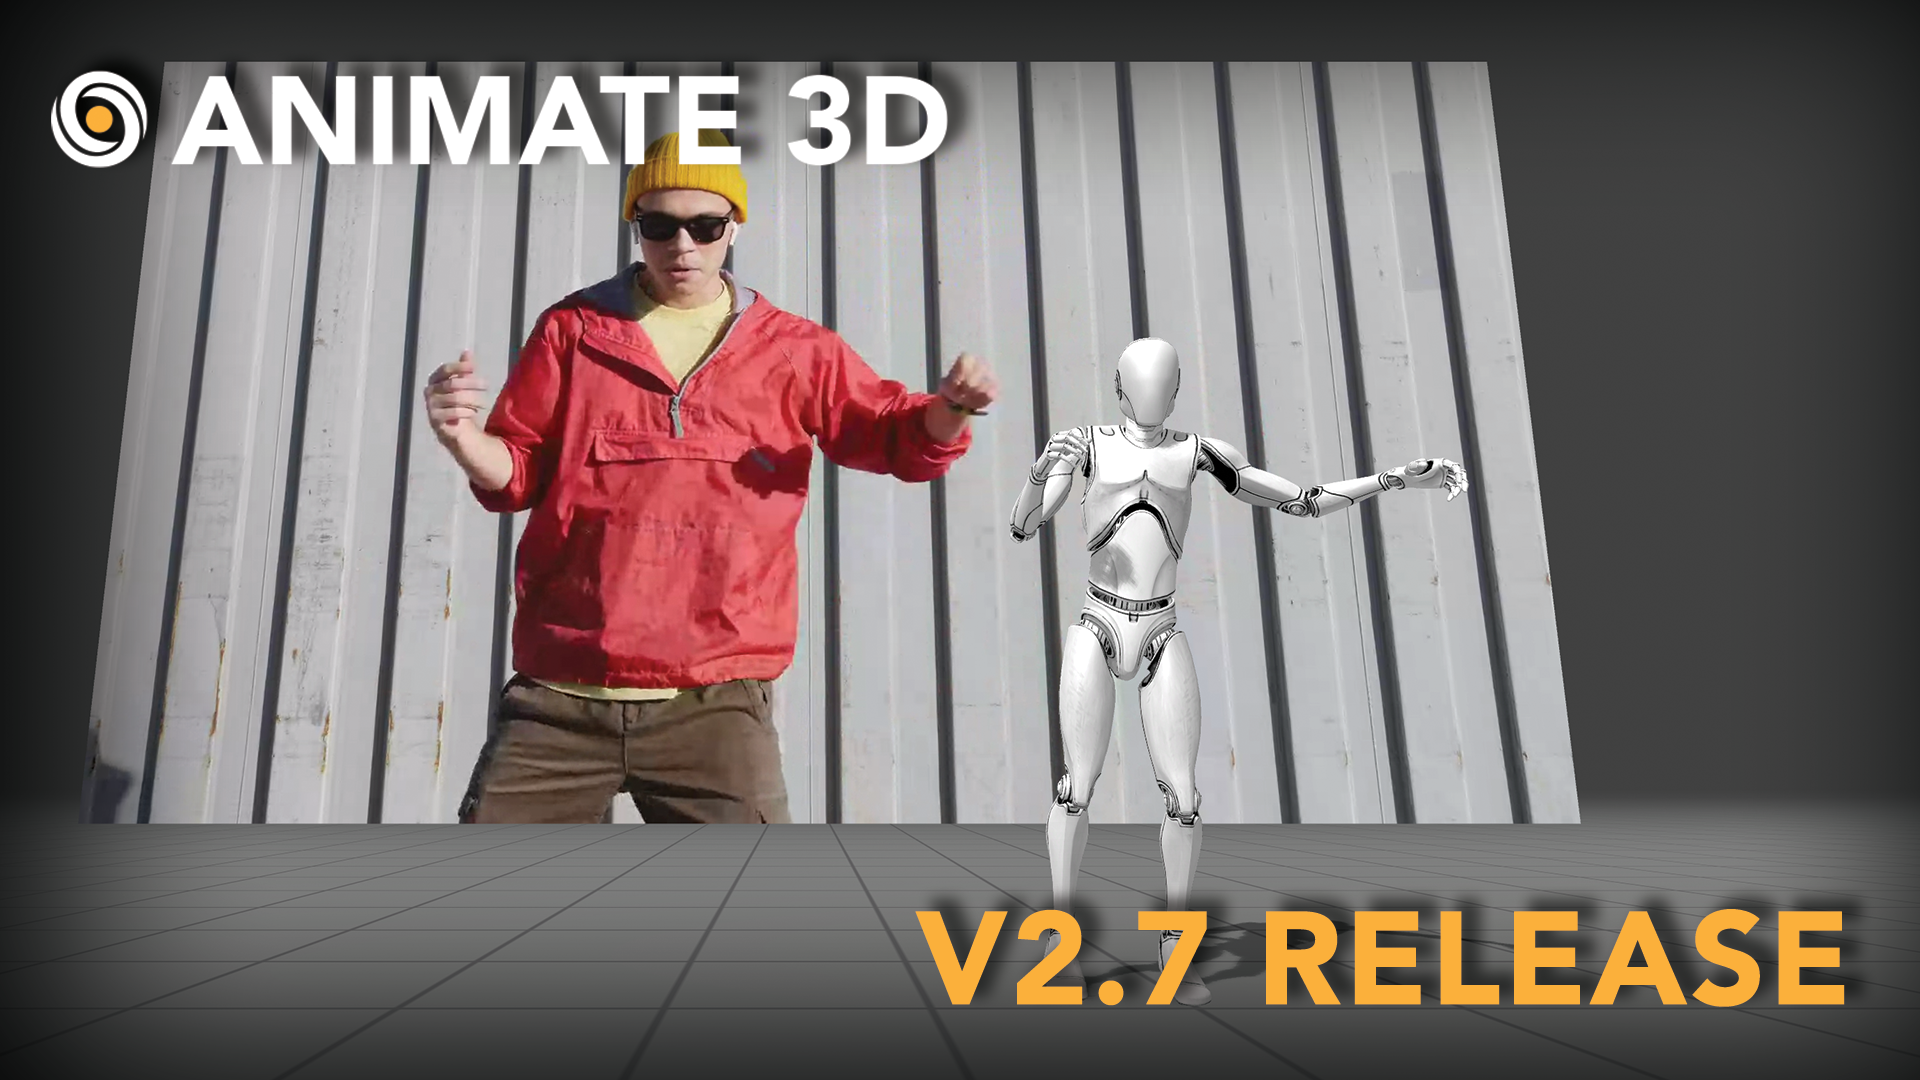 Animate 3D - V2.7 Release: Half Body Tracking, Sports Analysis + More!